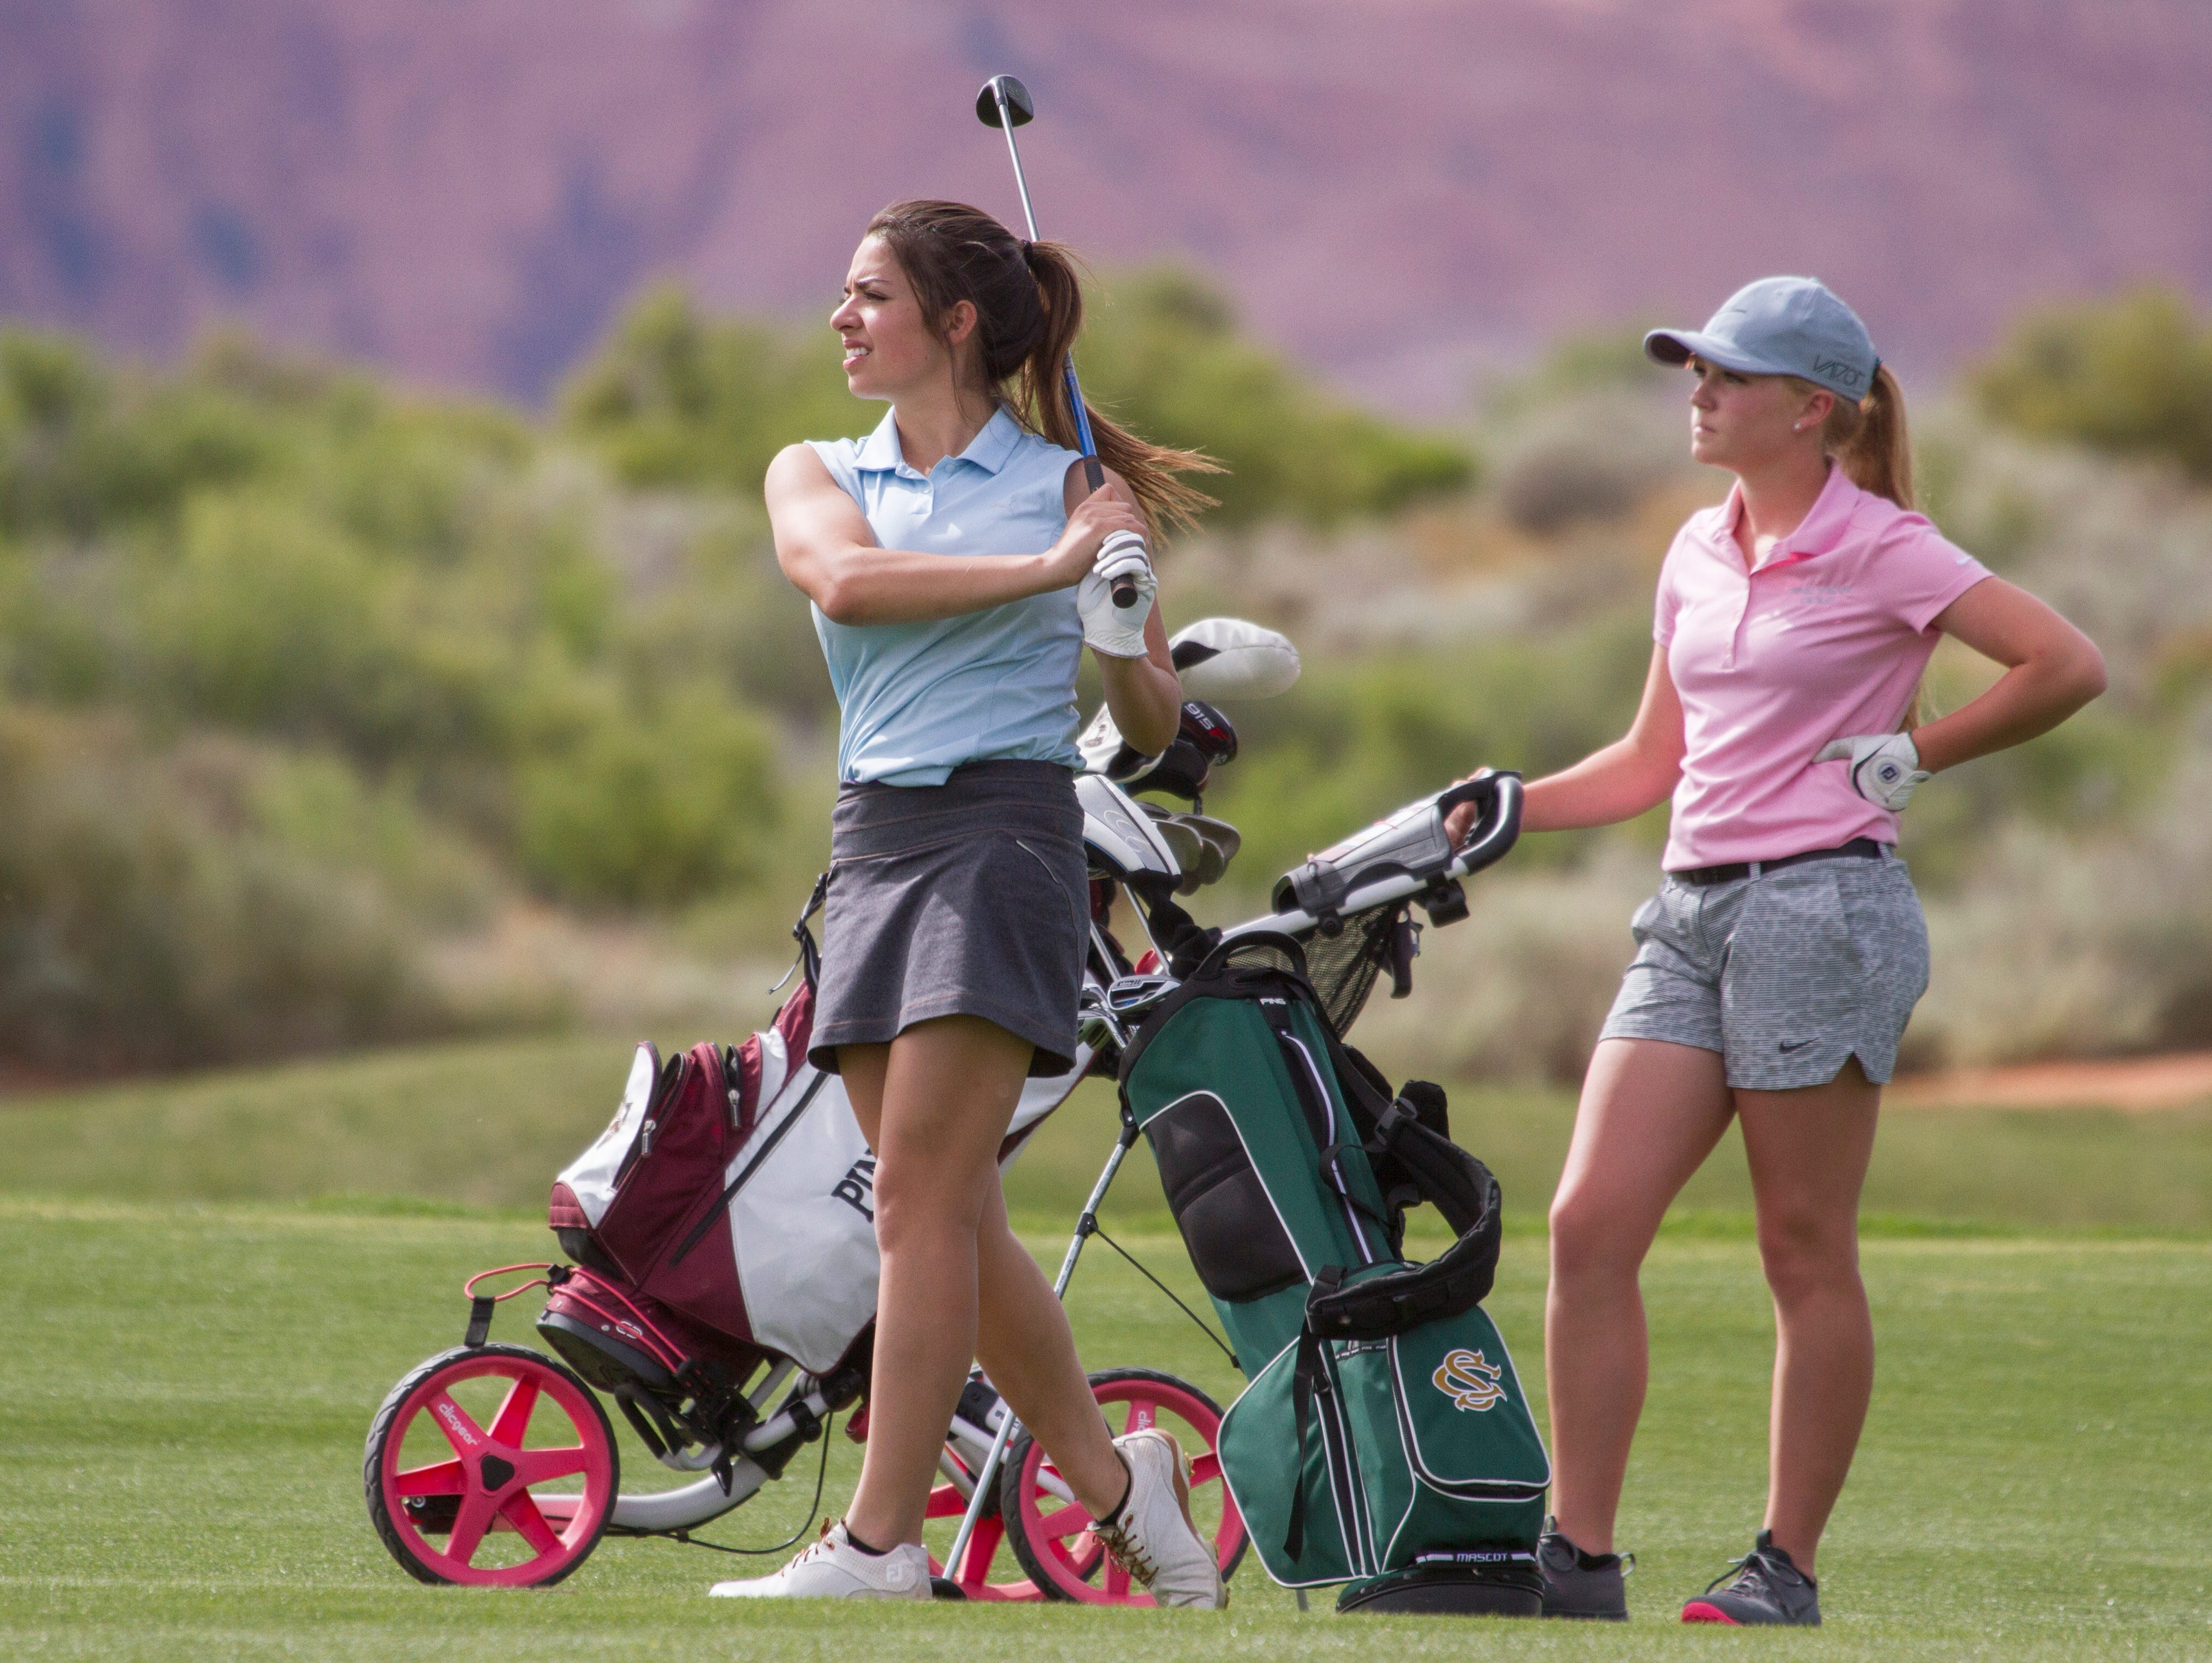 Snow Canyon's Michelle Crenshaw hits a shot on the front nine as Pine View's Bailia Milne looks on at The Ledges Golf Club on Wednesday. The Panthers won its first Region 9 tournament of the season after knocking off Desert Hills.